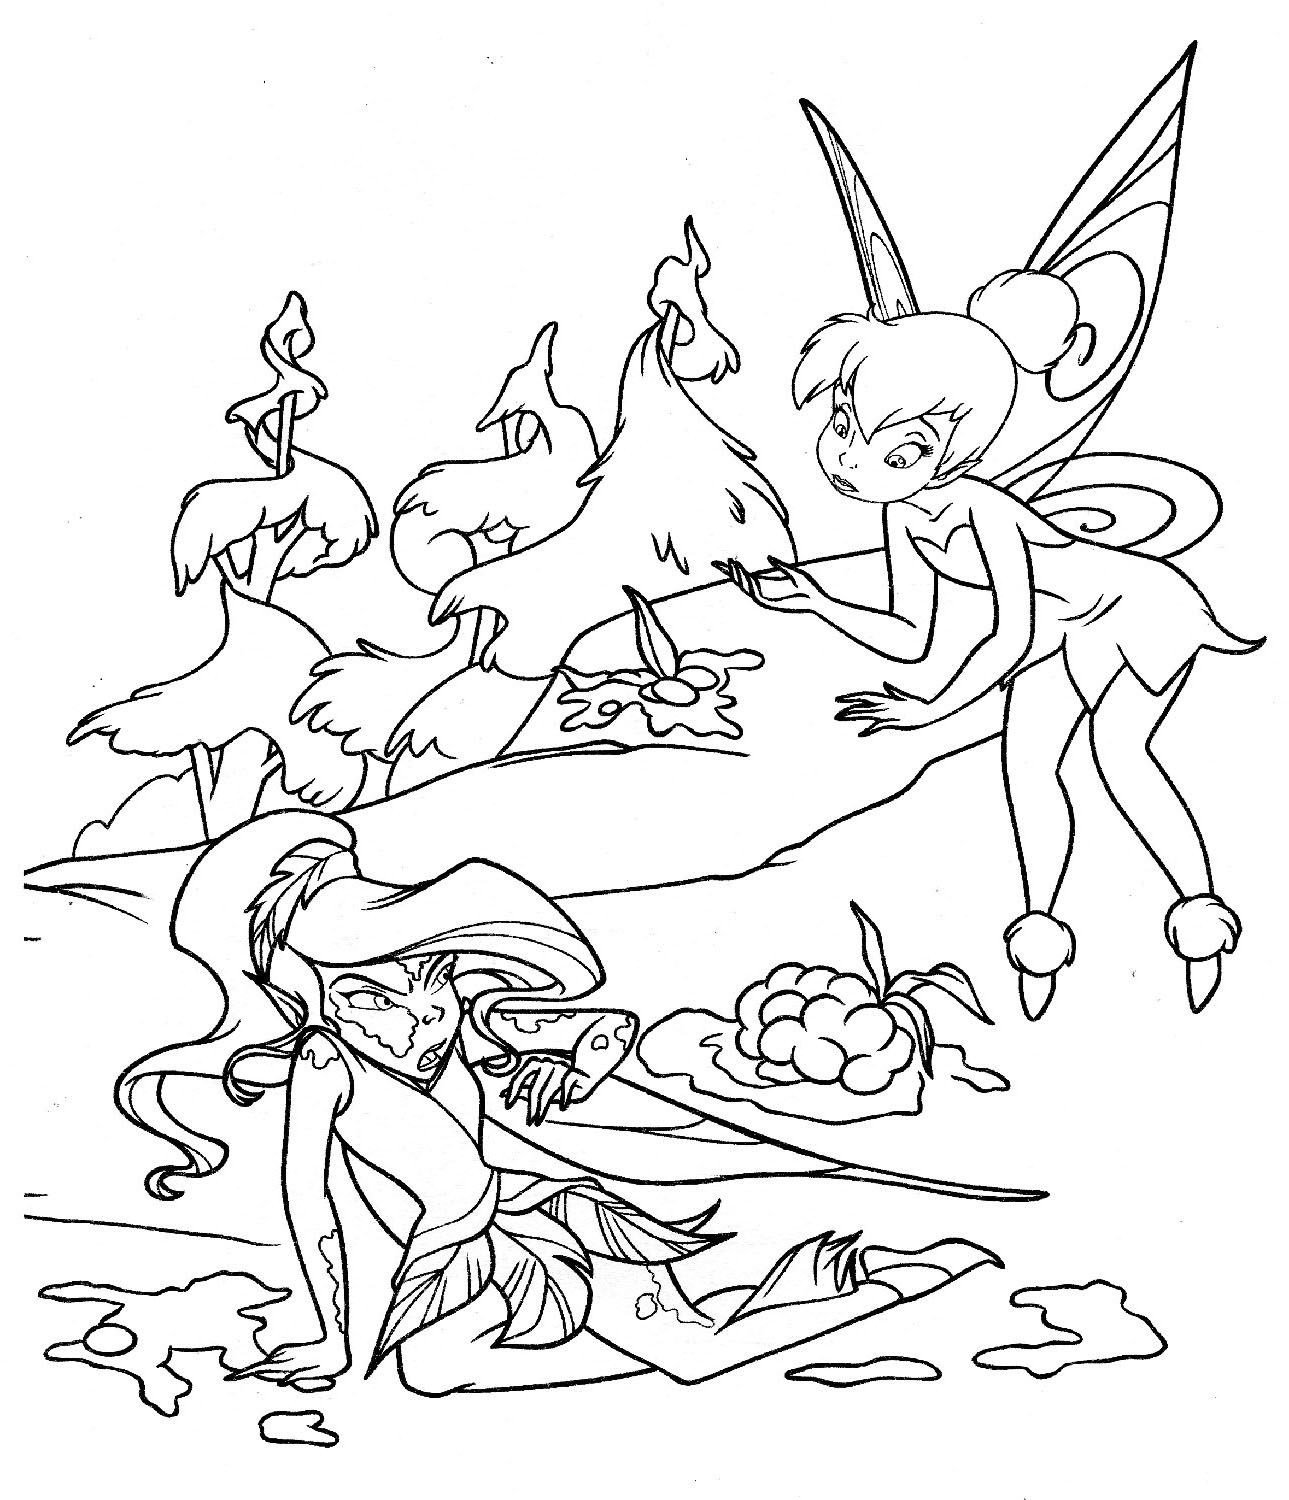 tinker bell coloring pages to download and print for free